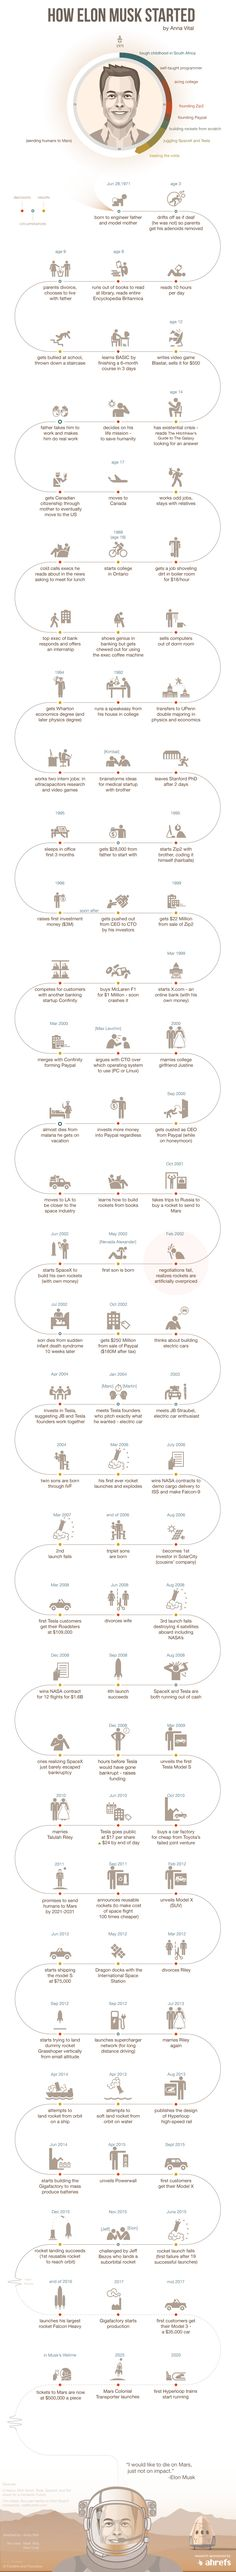 How Elon Musk started visualized by @annavital